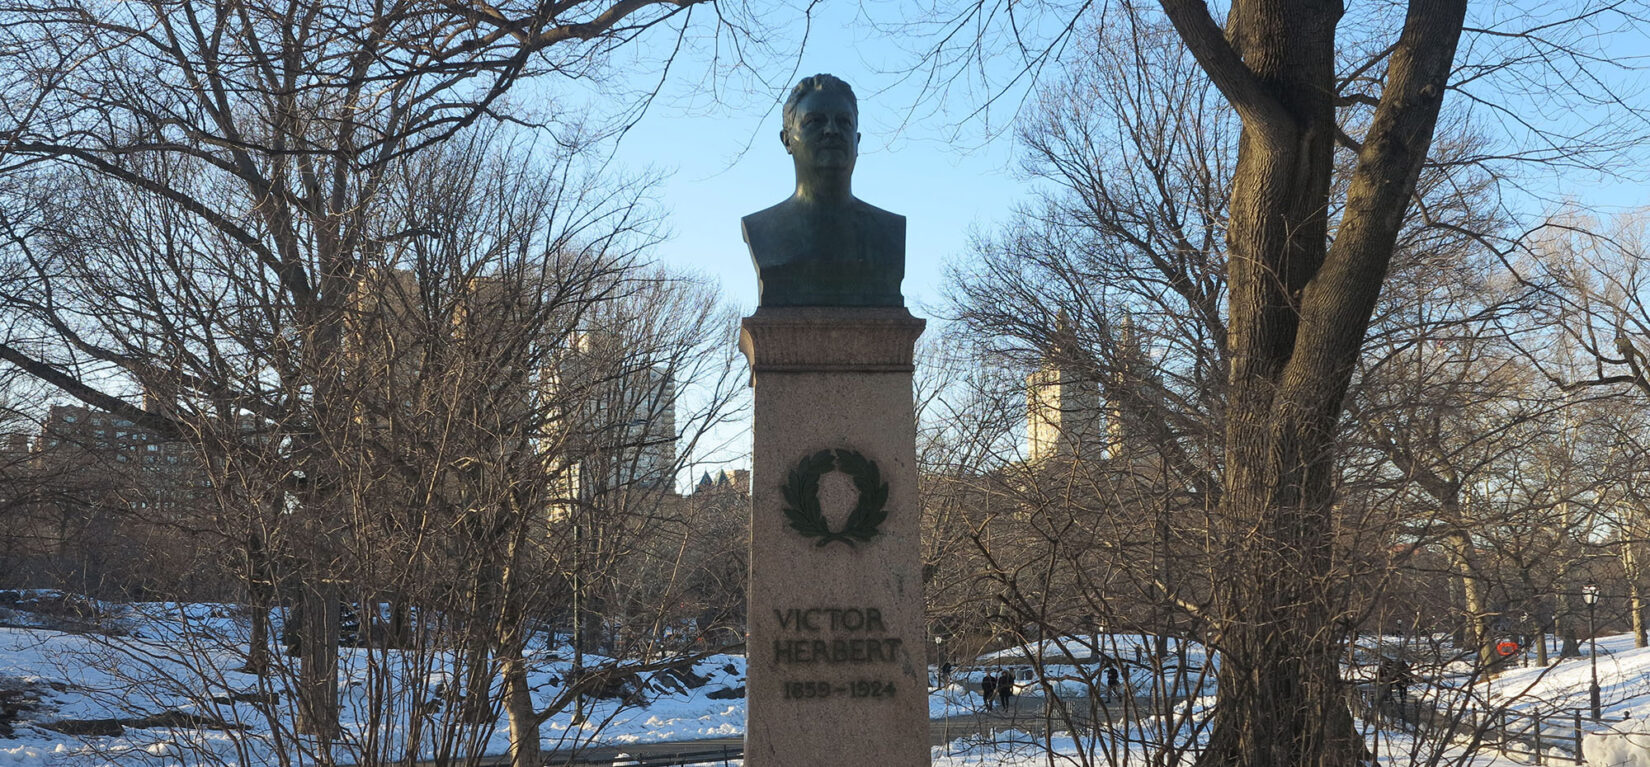 The bust of Victor Herbert sits on a tall pedestal amid a wintery landscape